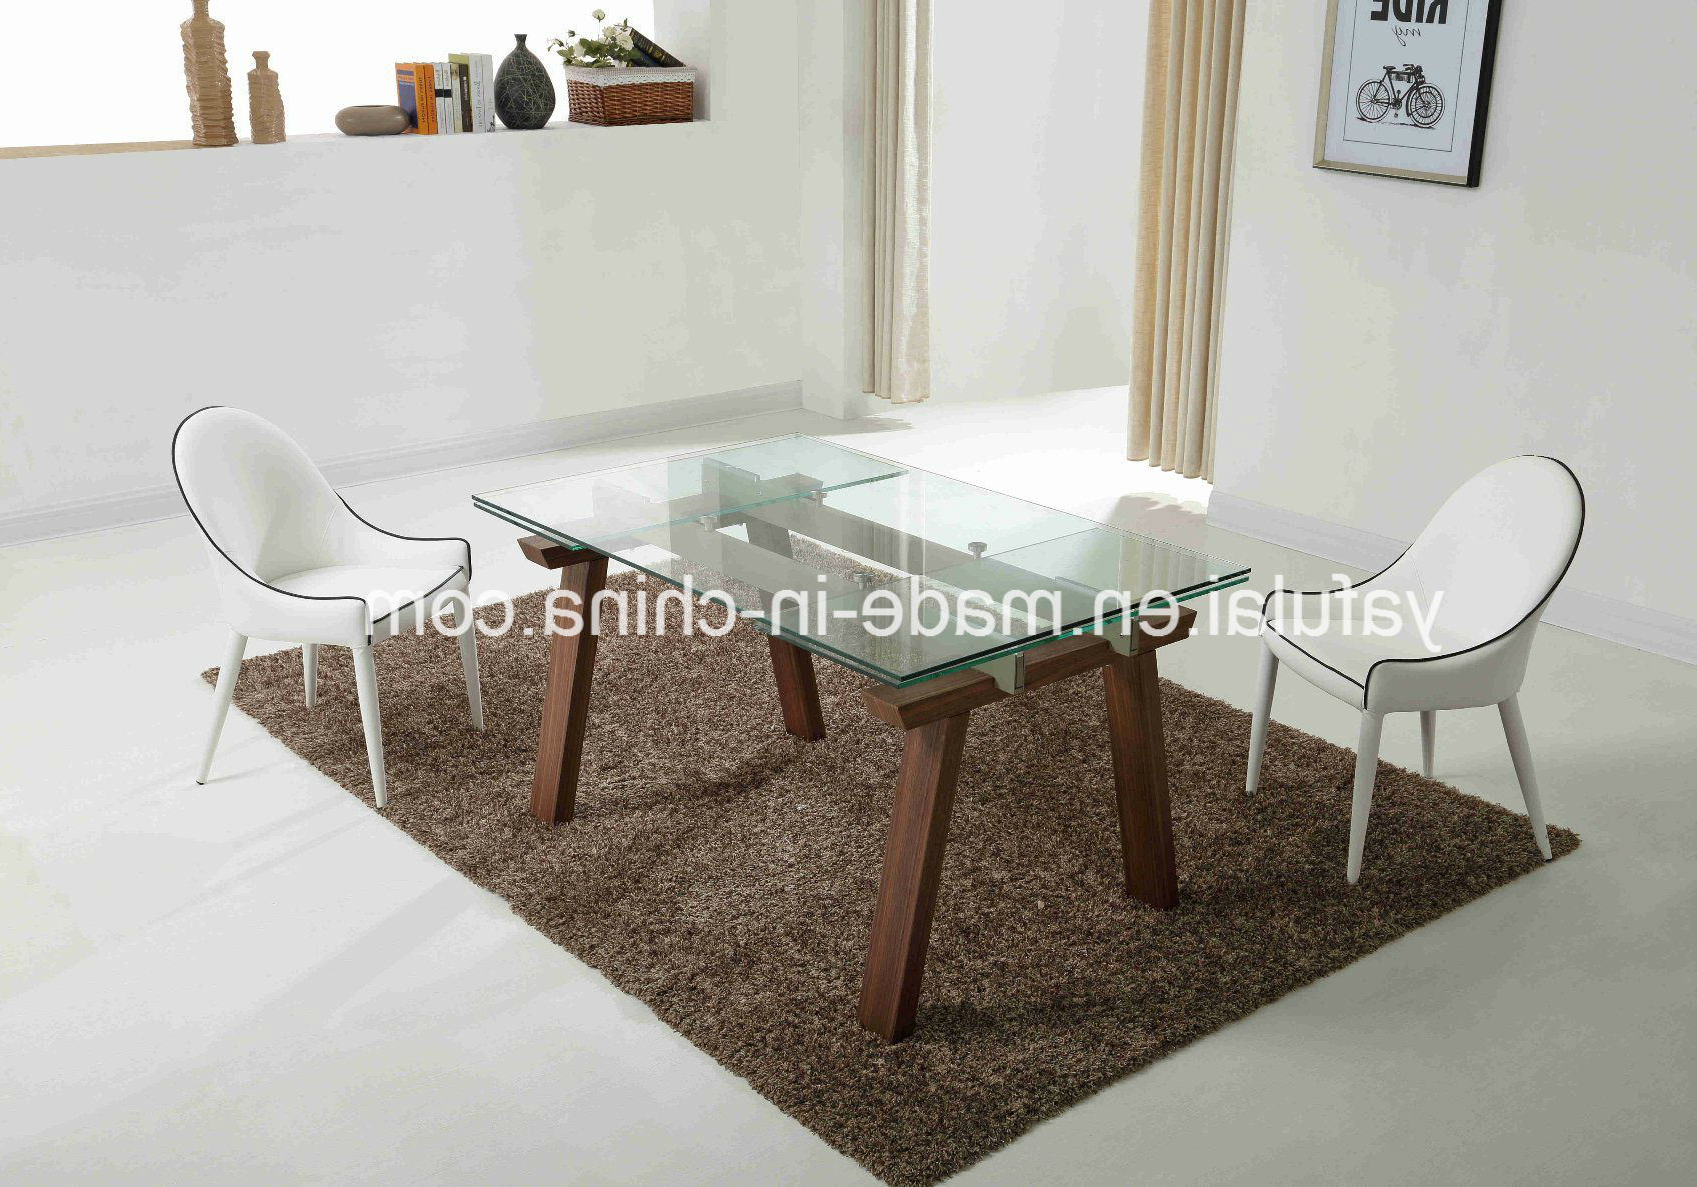 [%[hot Item] Morden Glass Extension Dining Table Solid Wood Dining Furniture Within Trendy Extension Dining Tables|extension Dining Tables Within 2018 [hot Item] Morden Glass Extension Dining Table Solid Wood Dining Furniture|trendy Extension Dining Tables Regarding [hot Item] Morden Glass Extension Dining Table Solid Wood Dining Furniture|most Recent [hot Item] Morden Glass Extension Dining Table Solid Wood Dining Furniture Pertaining To Extension Dining Tables%] (View 24 of 30)